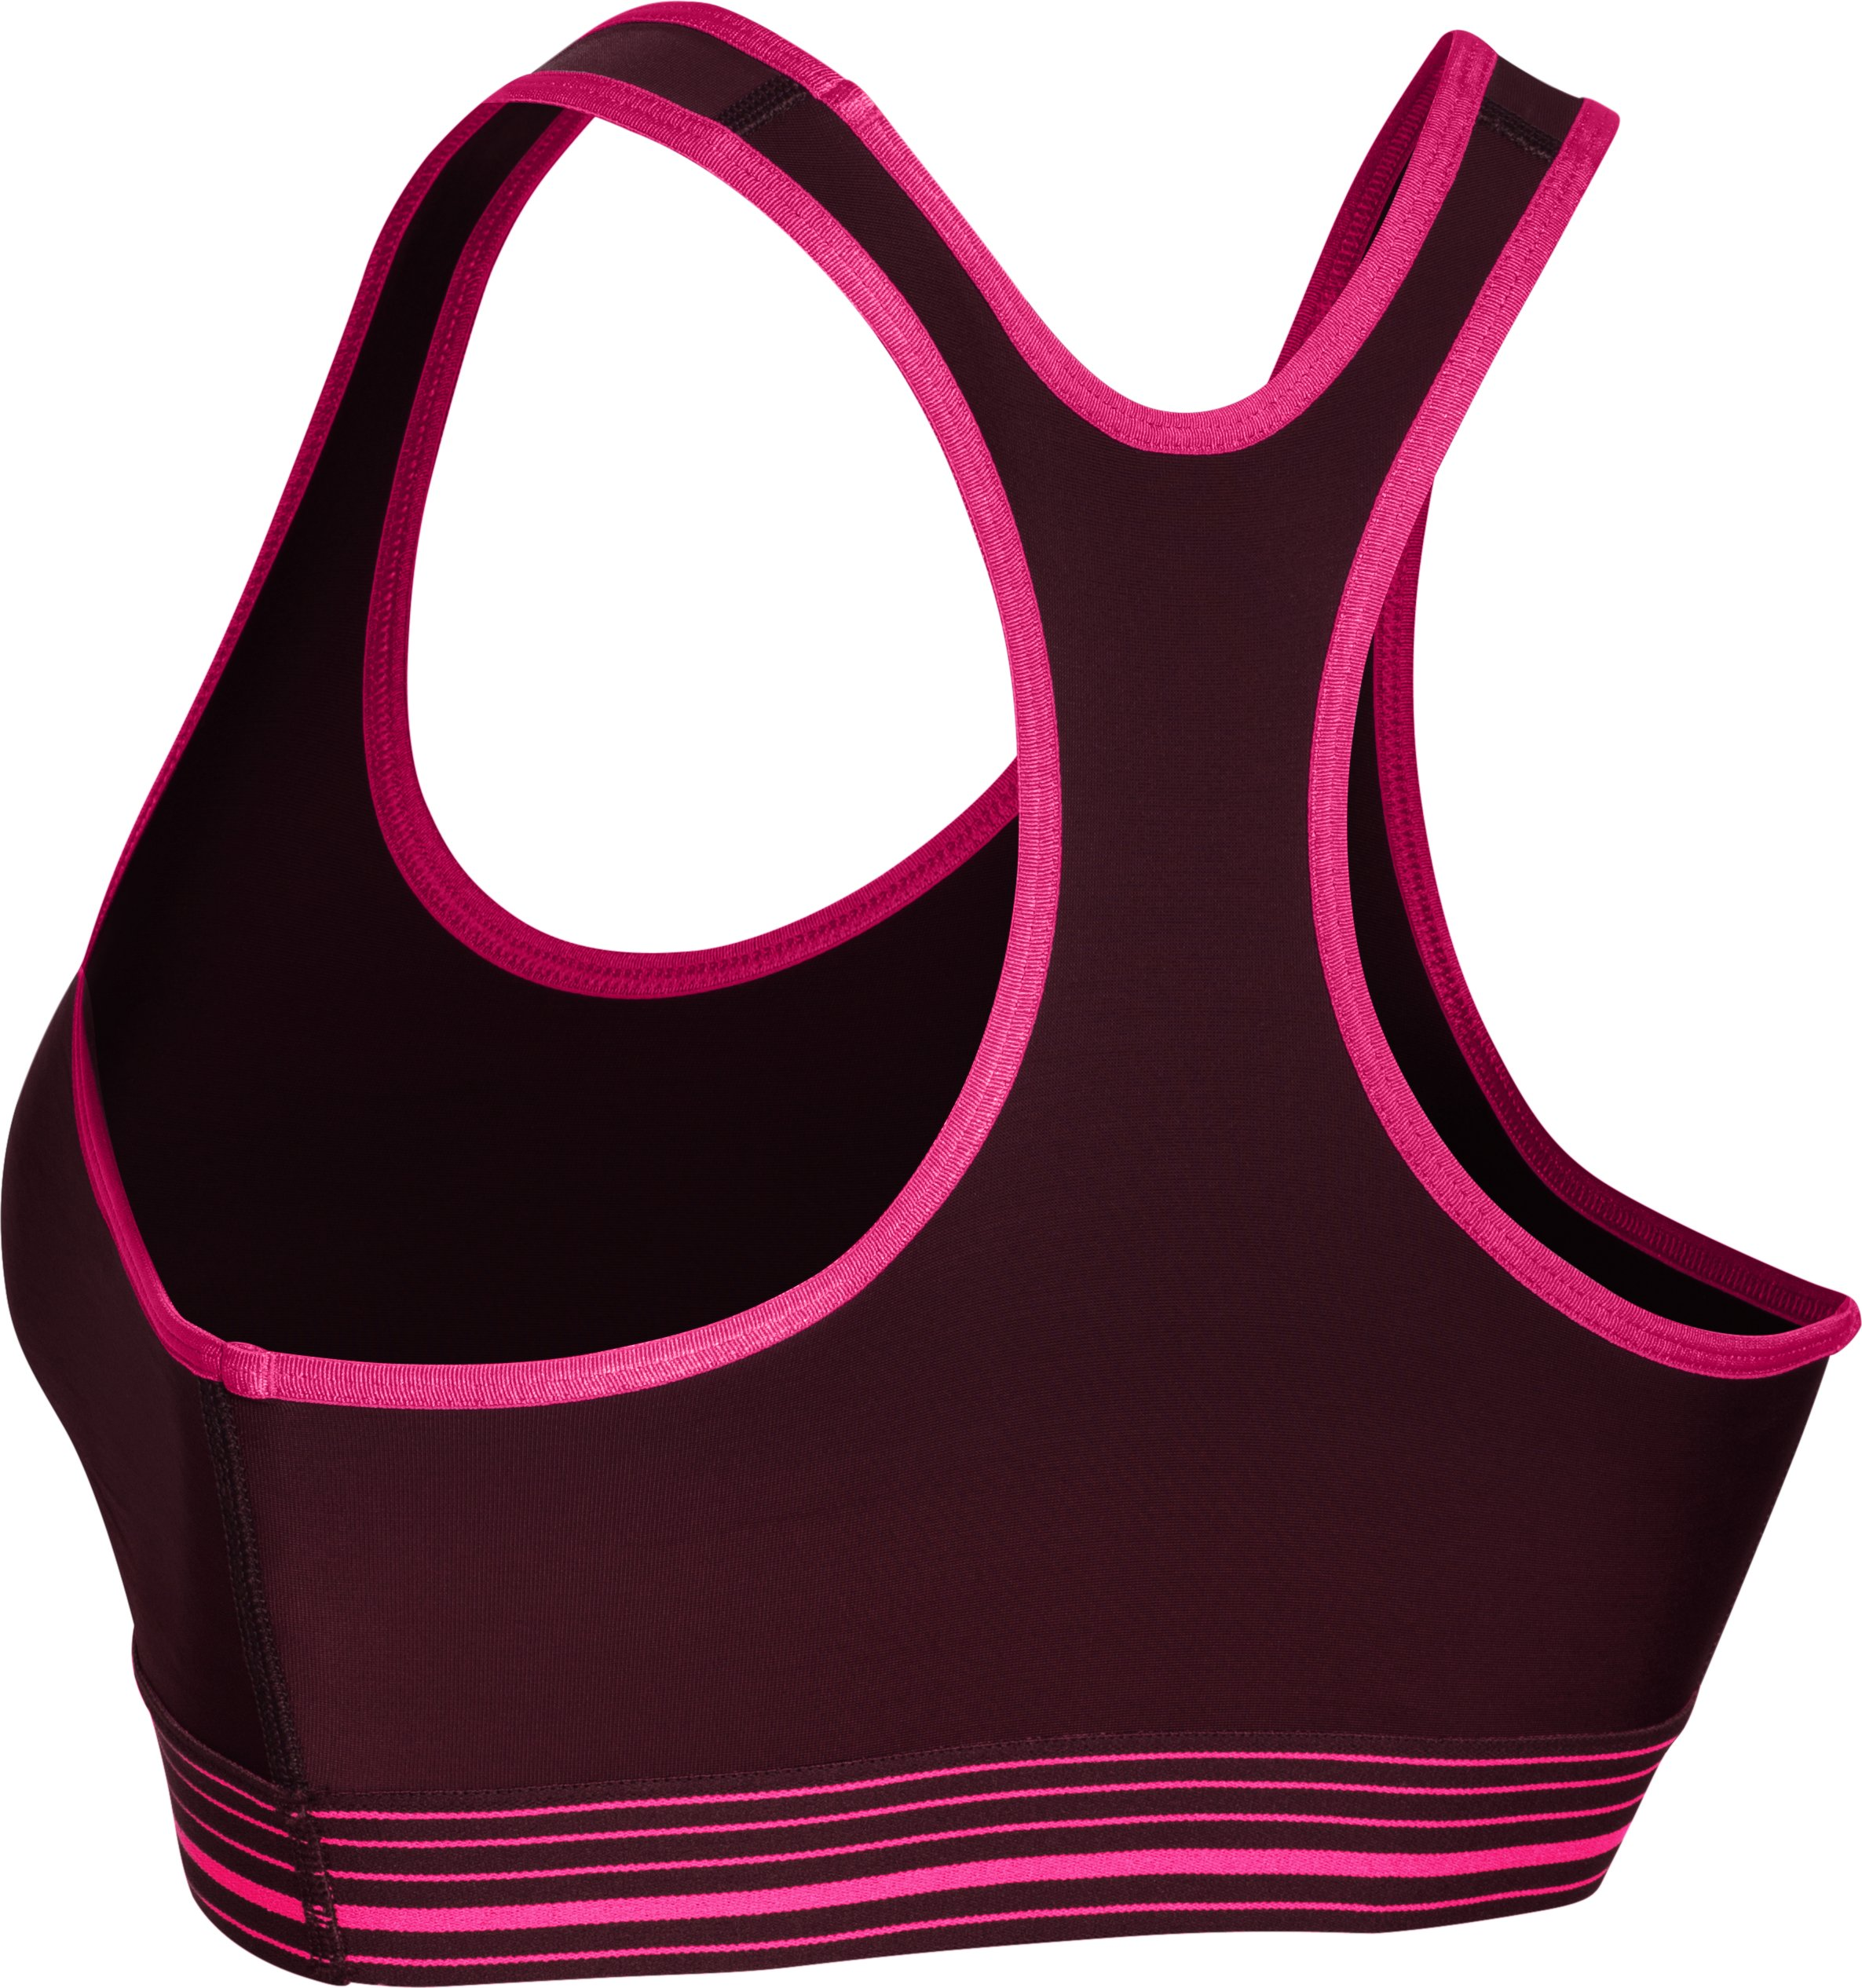 Women's Armour® Mid Sports Bra, Ox Blood